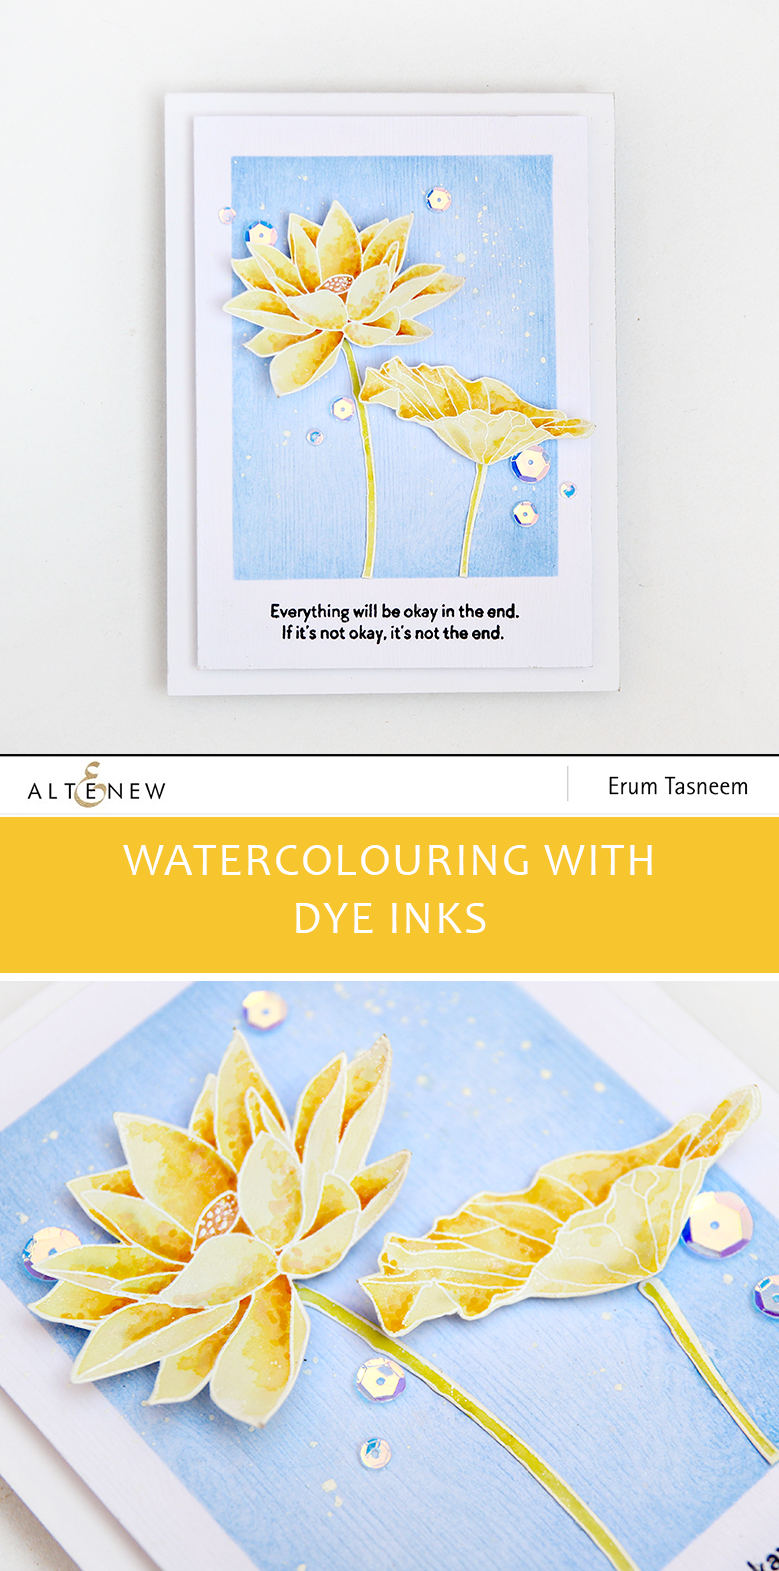 Altenew Lotus Stamp Set watercoloured with Crisp Dye Inks | Erum Tasneem | @pr0digy0